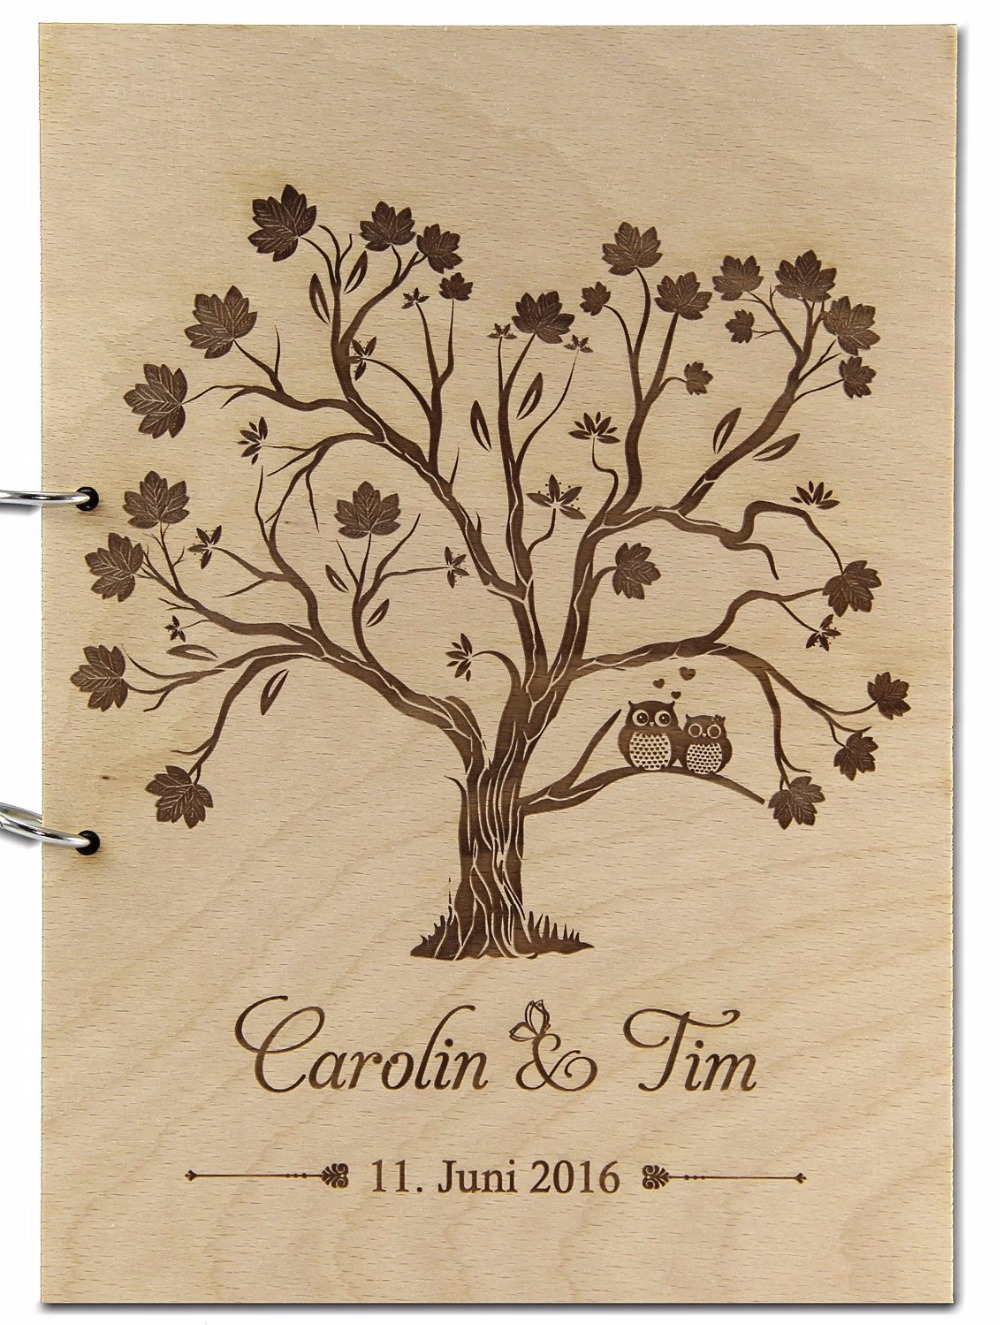 Personalized Wedding Guest Book Custom Wooden Sign Photo Album for Baby Rustic Love Tree Guestbook with Name Date Wedding Decor